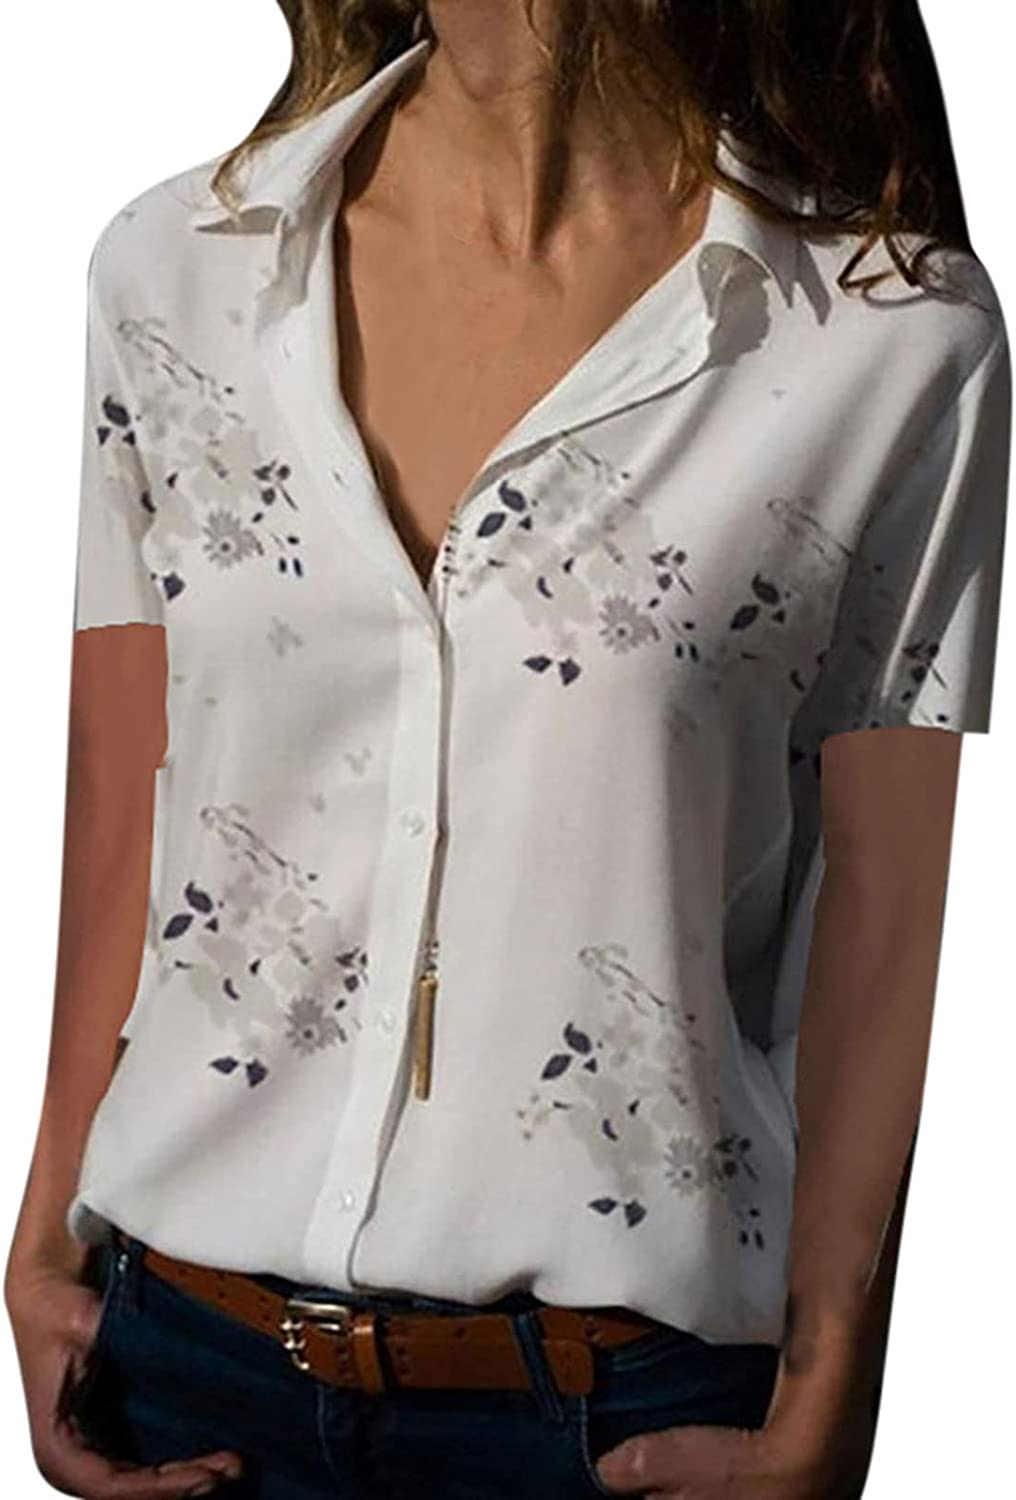 Womens Summer Casual Blouses Collared Button Down Shirt V Neck Floral Printed T Shirts Tops Tunics